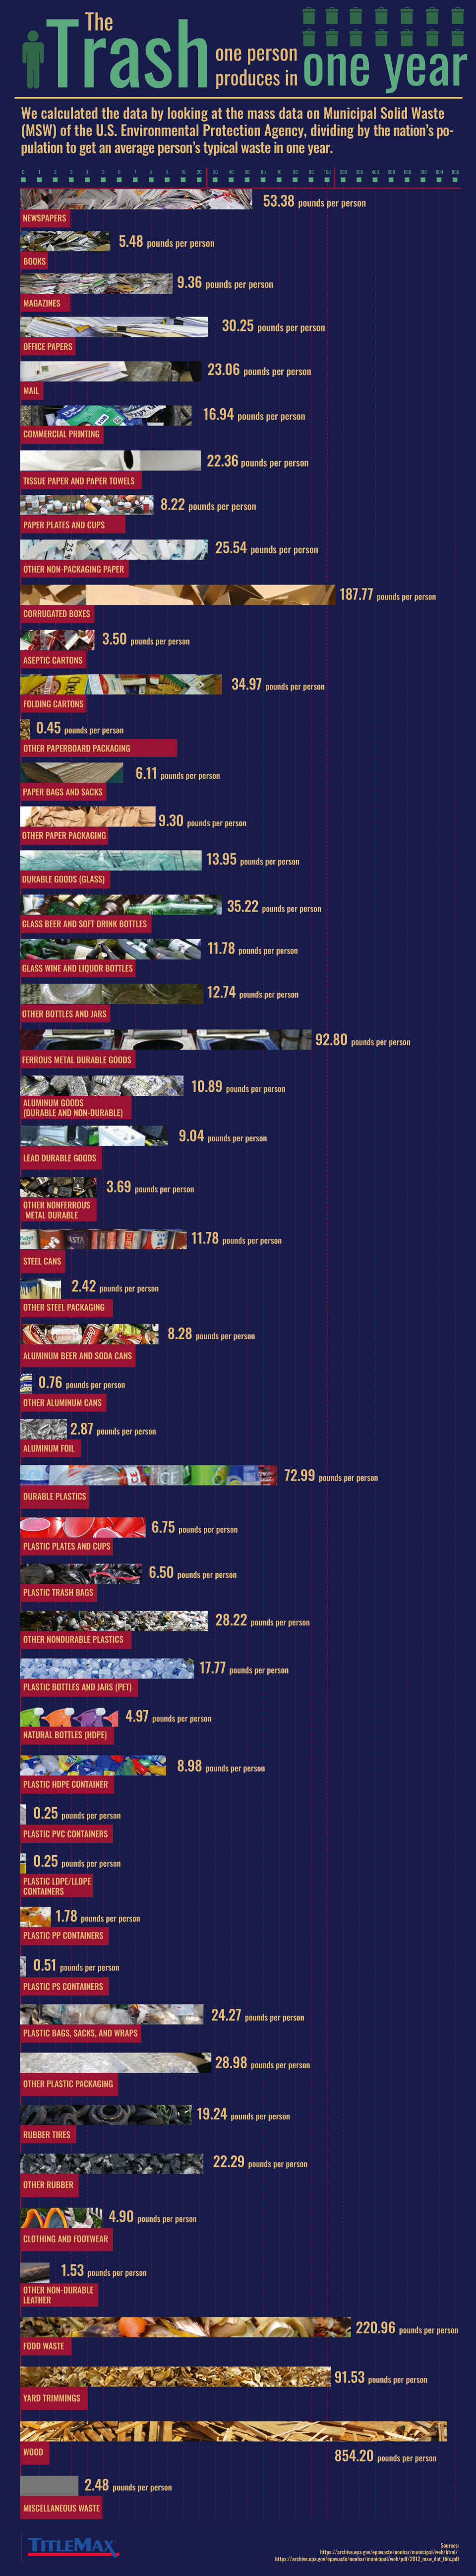 How much trash one person can produce by year infographic